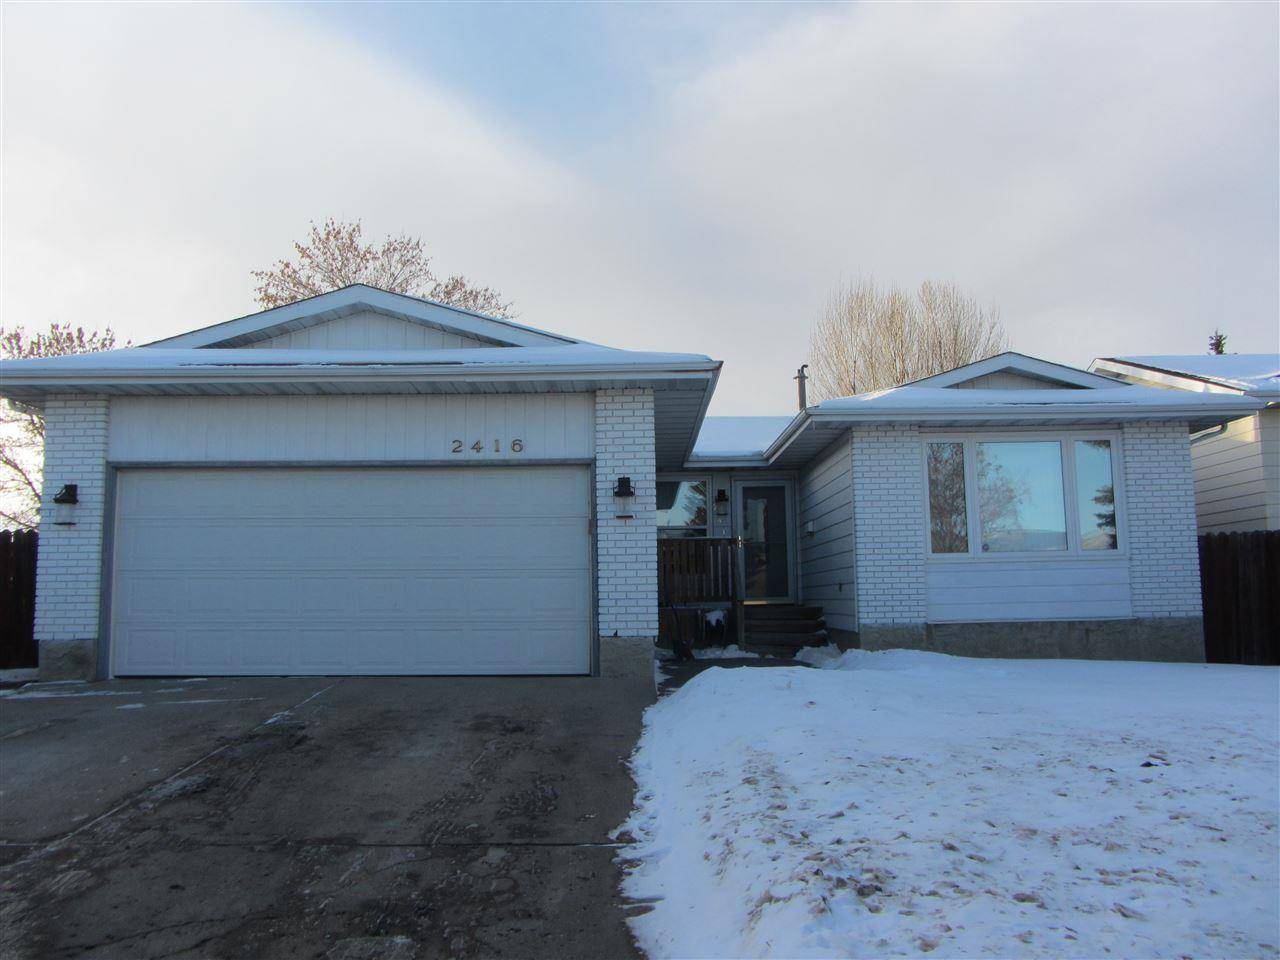 House for sale at 2416 78 St Nw Edmonton Alberta - MLS: E4182701